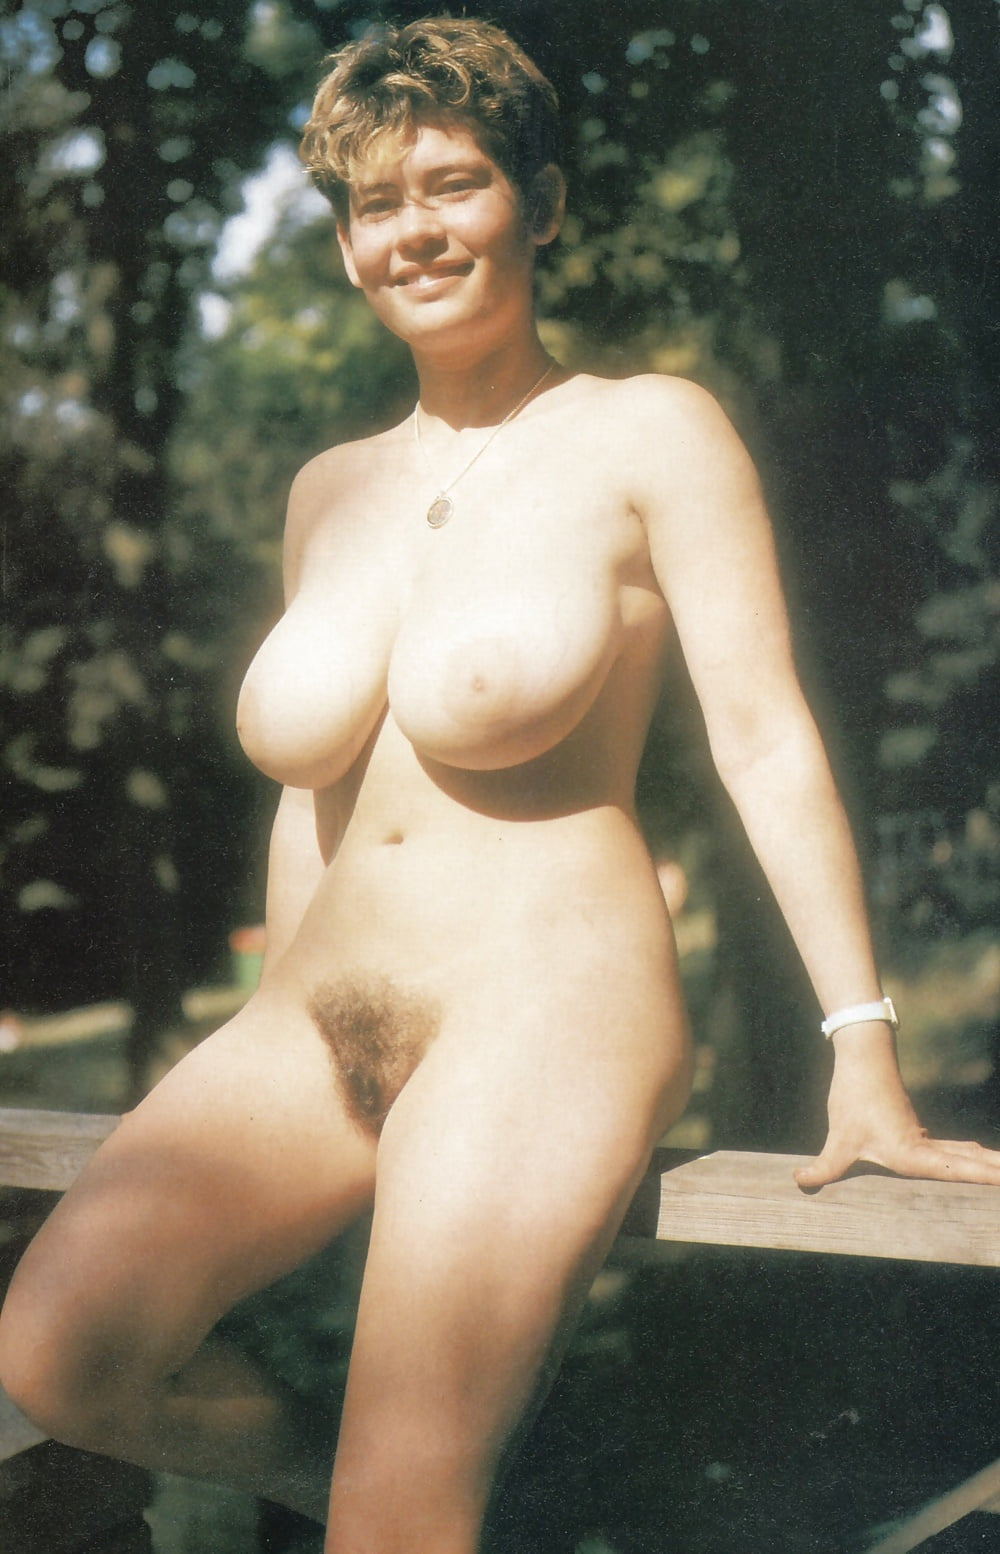 Two busty nudist girls about 30 years ago - 6 Pics | xHamster